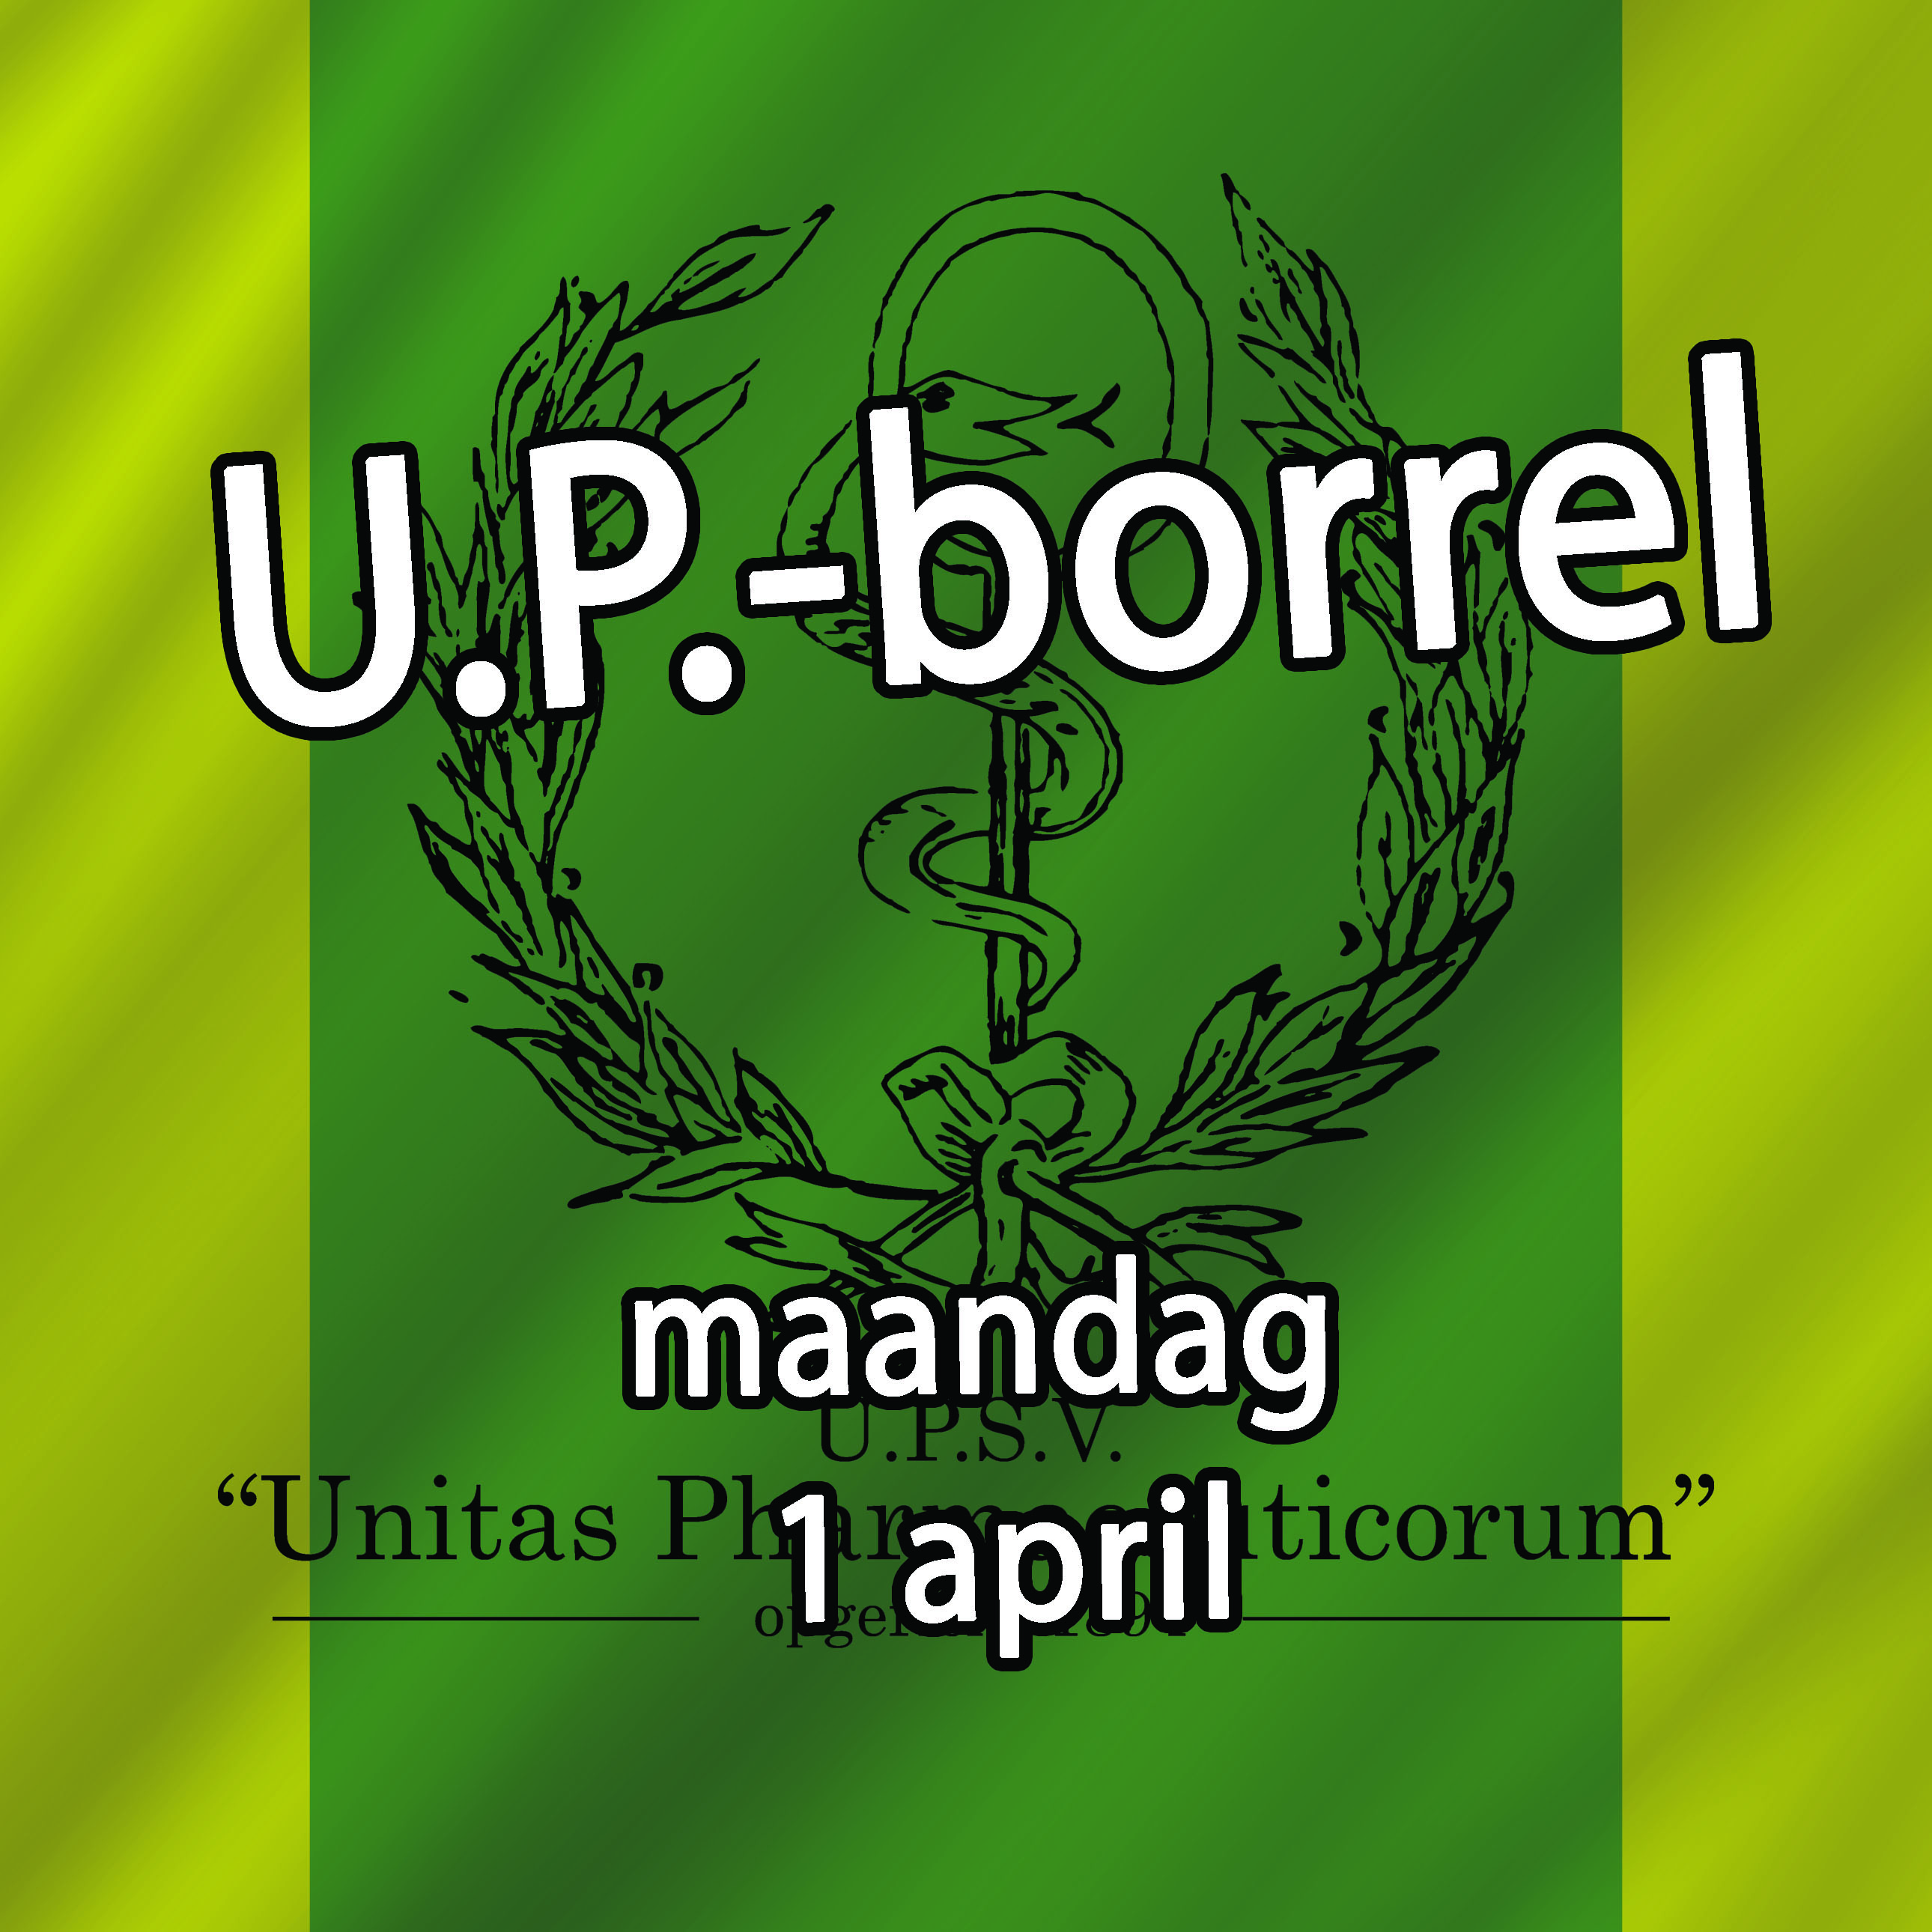 Borrel 1 april